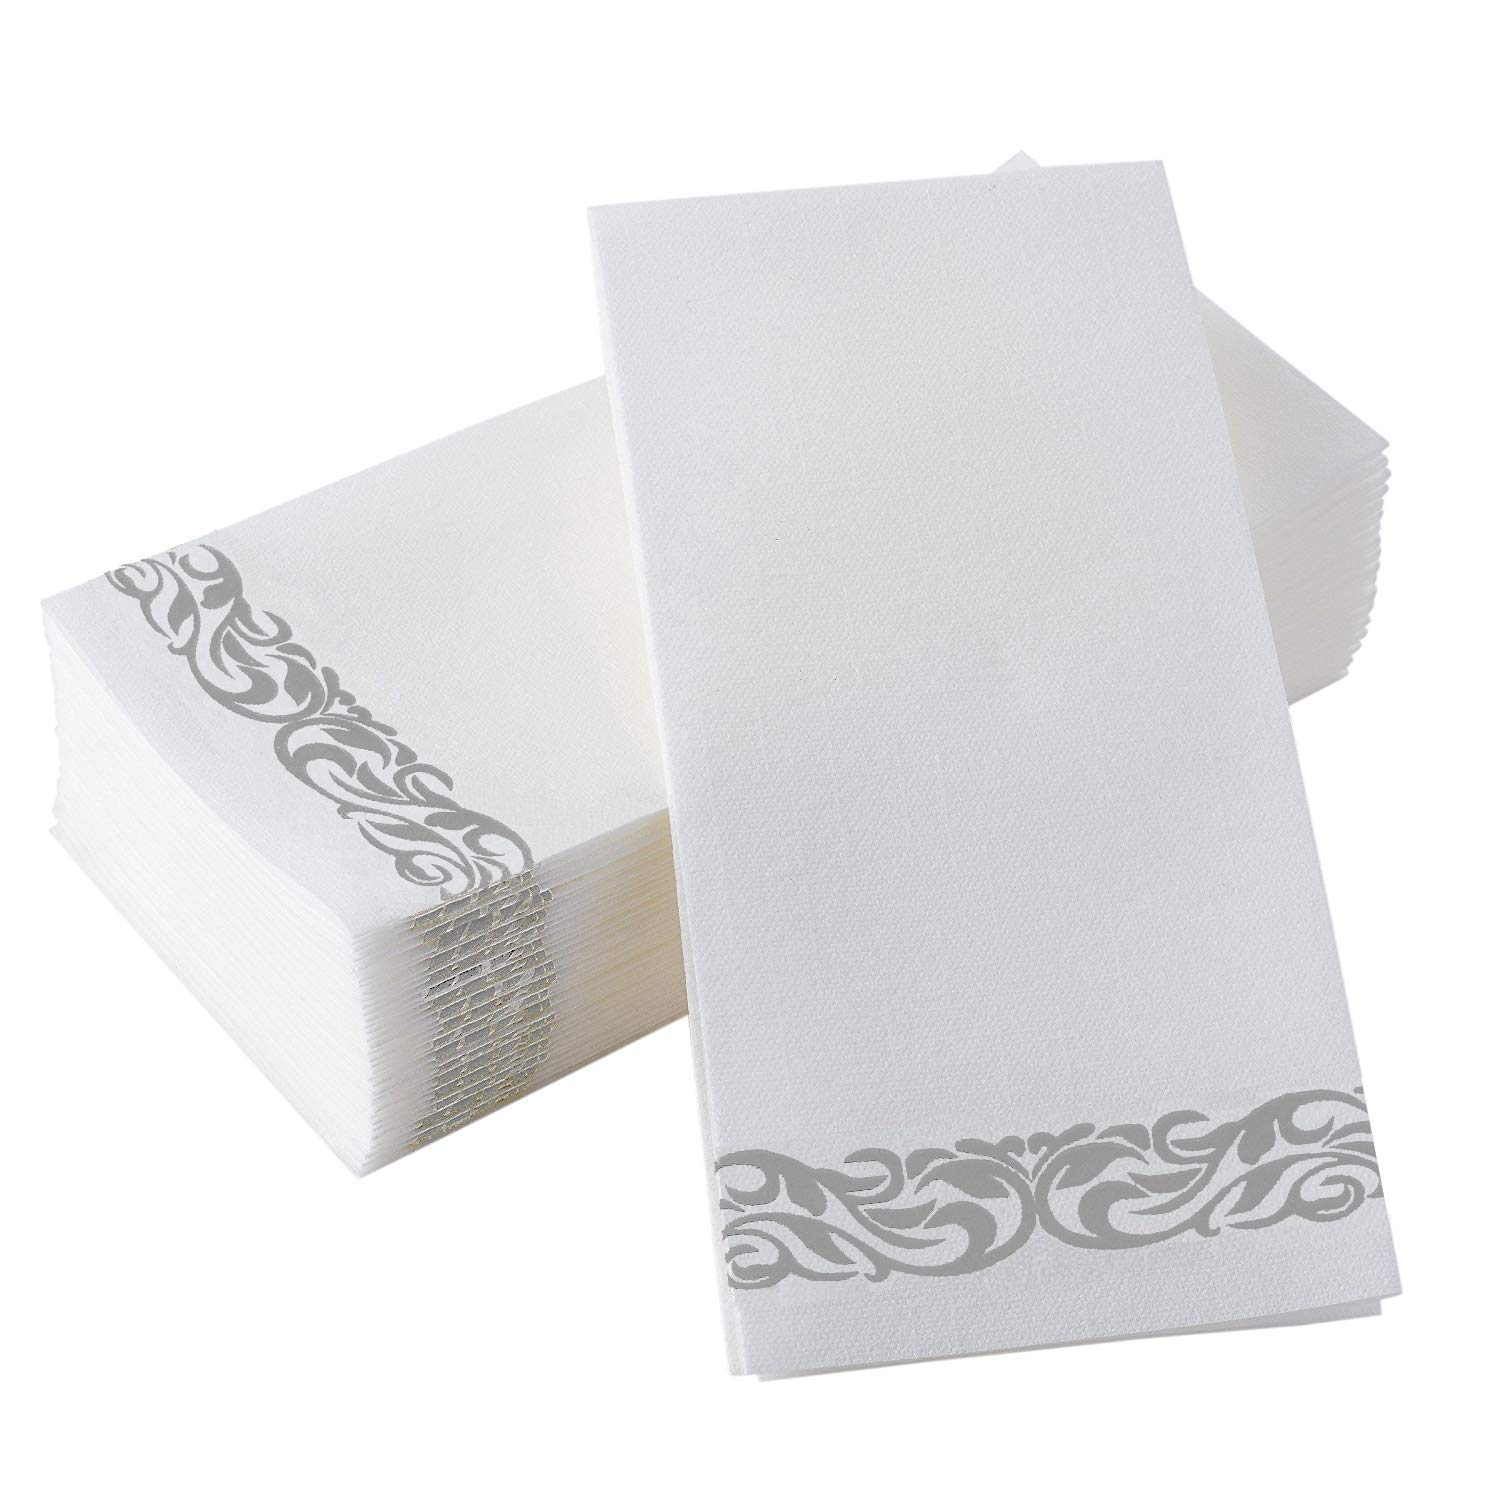 Gmark Decorative Linen-Feel Guest Towels - Silver Floral Premium Bathroom Hand Towels, Pack of 100-12x17 Inches for Dinner, Wedding and Cocktail Party Disposable Soft & Durable GM1059B